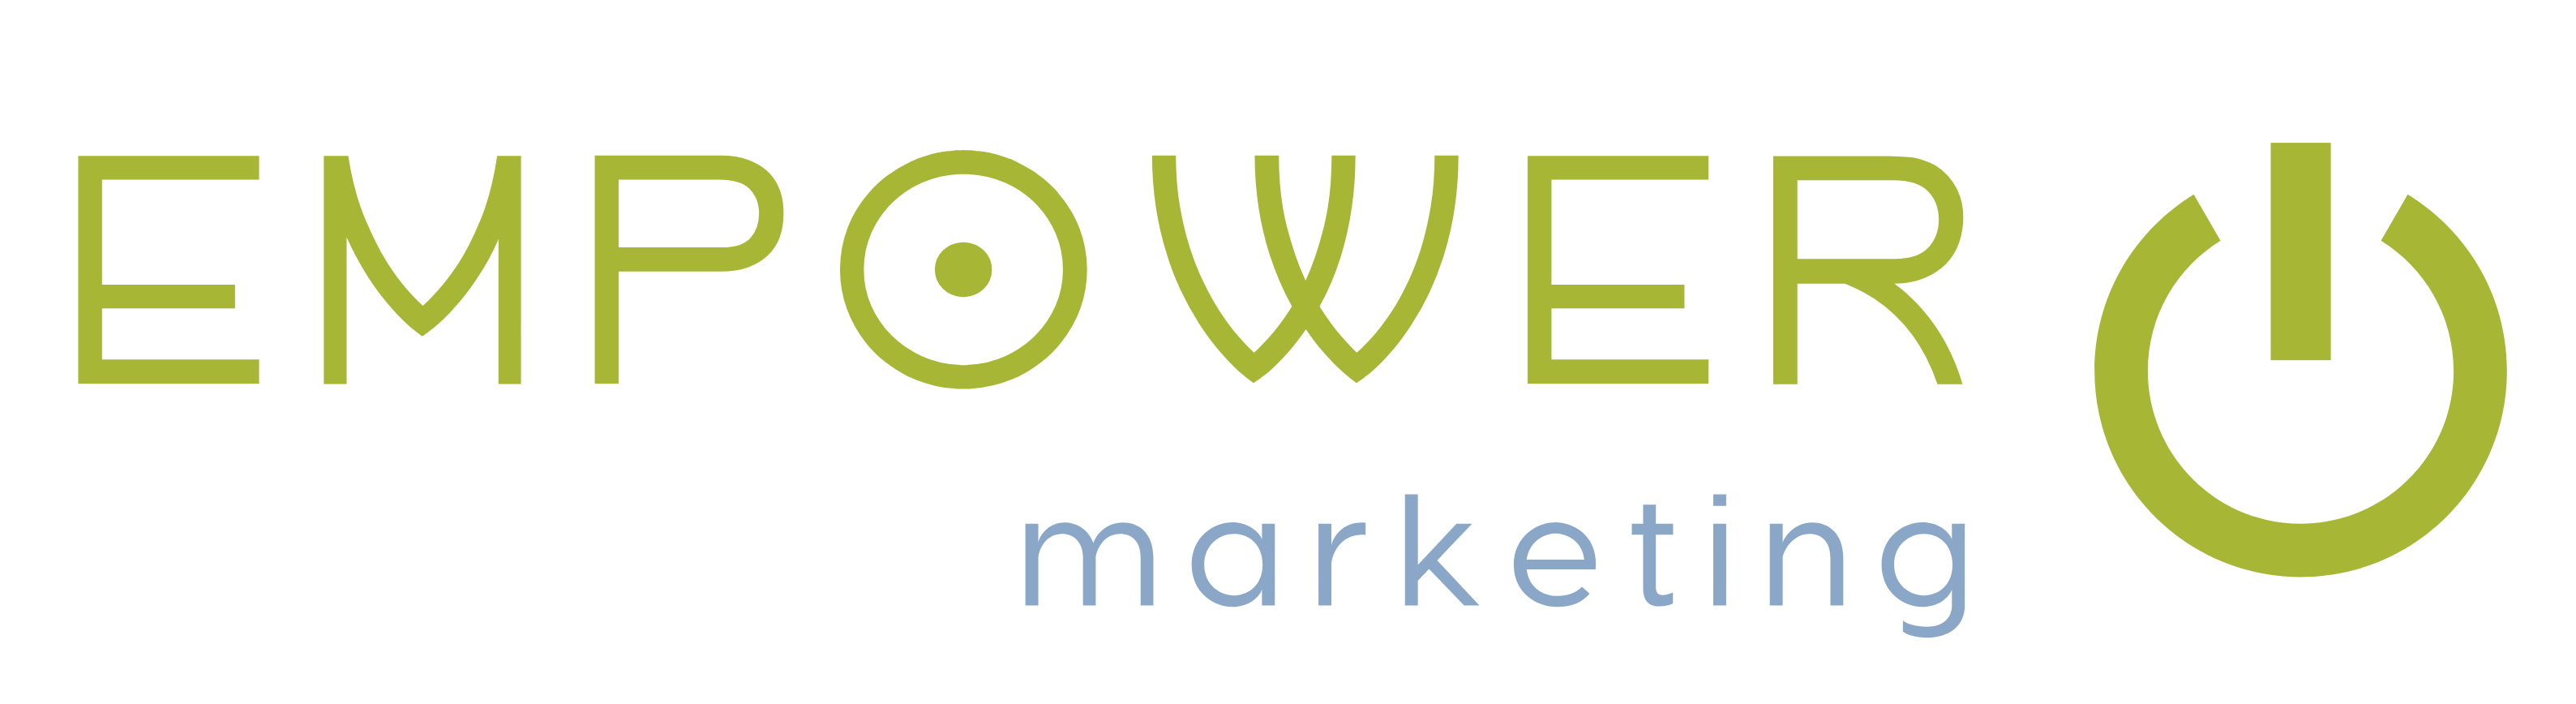 Empower Marketing Website